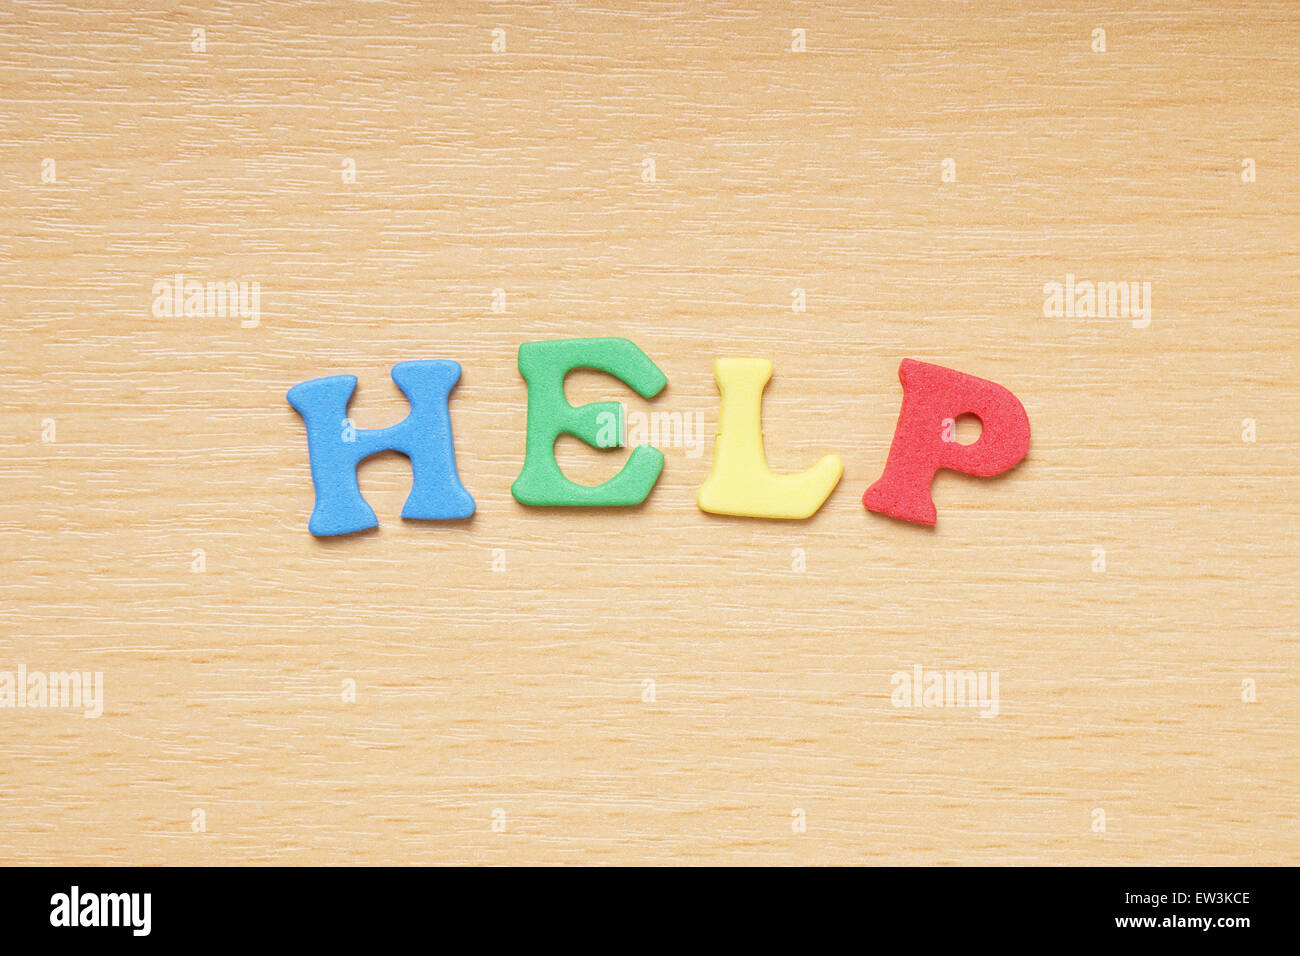 help in foam rubber letters - Stock Image